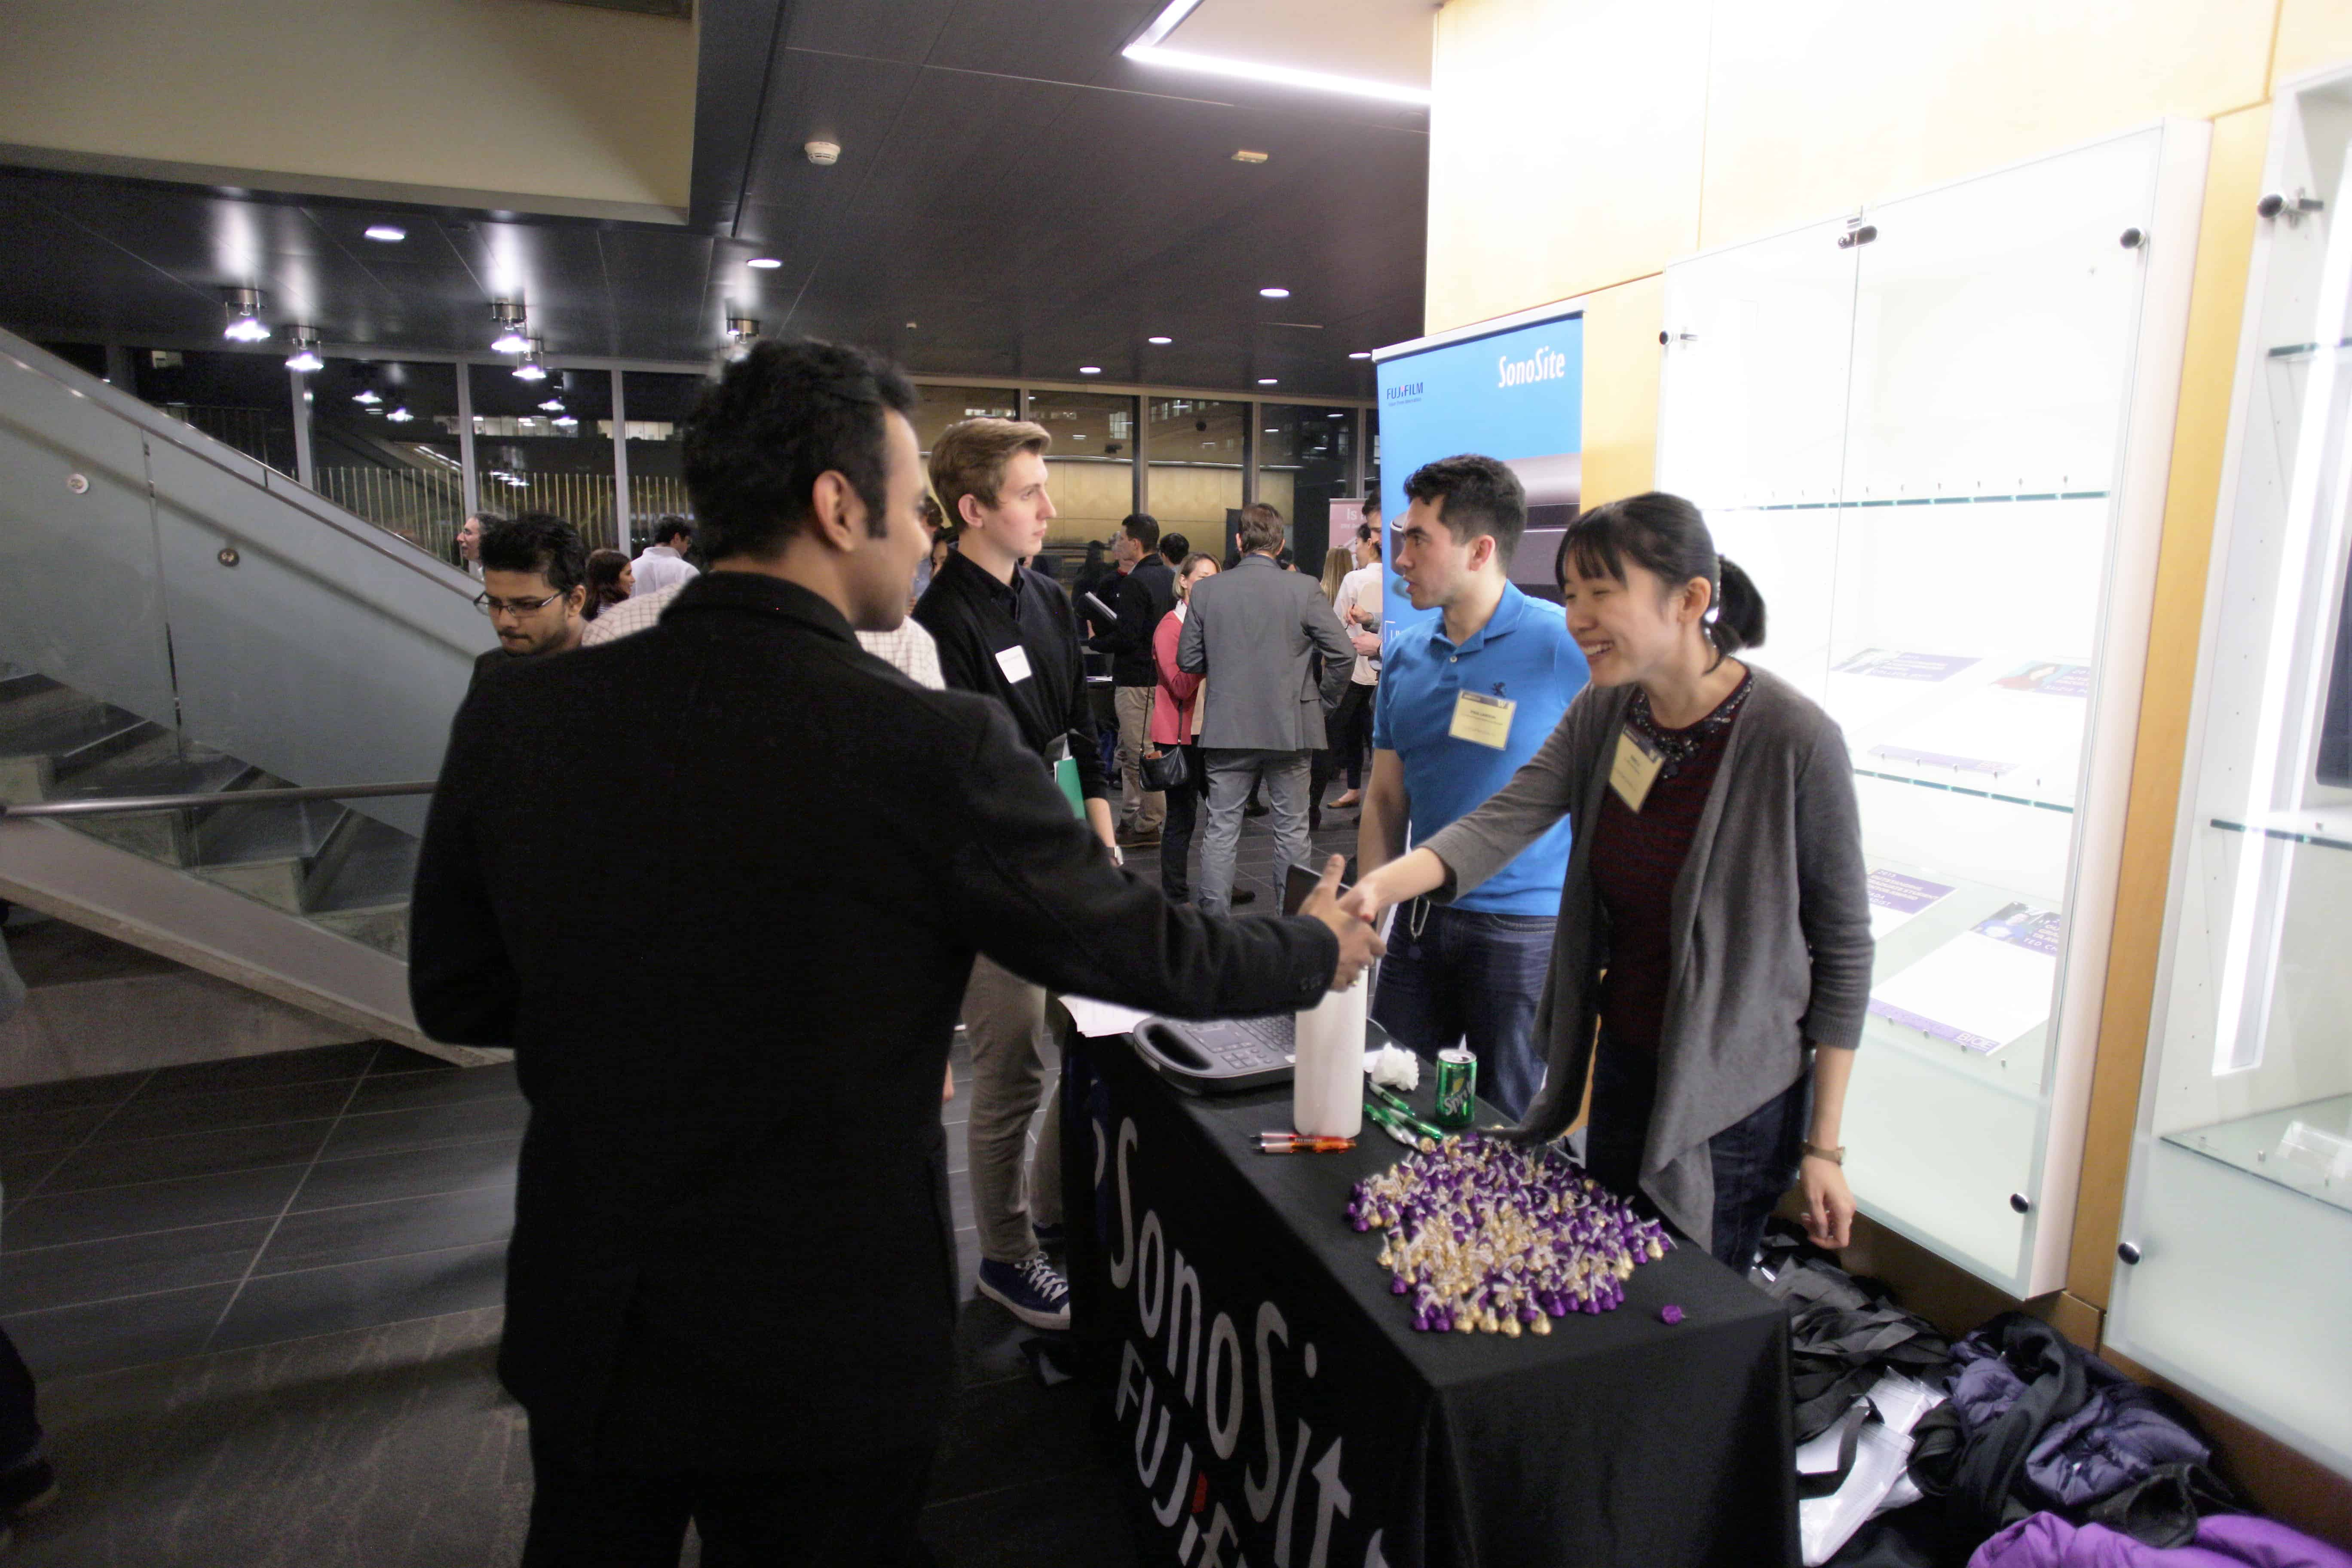 Researchers networking at an event